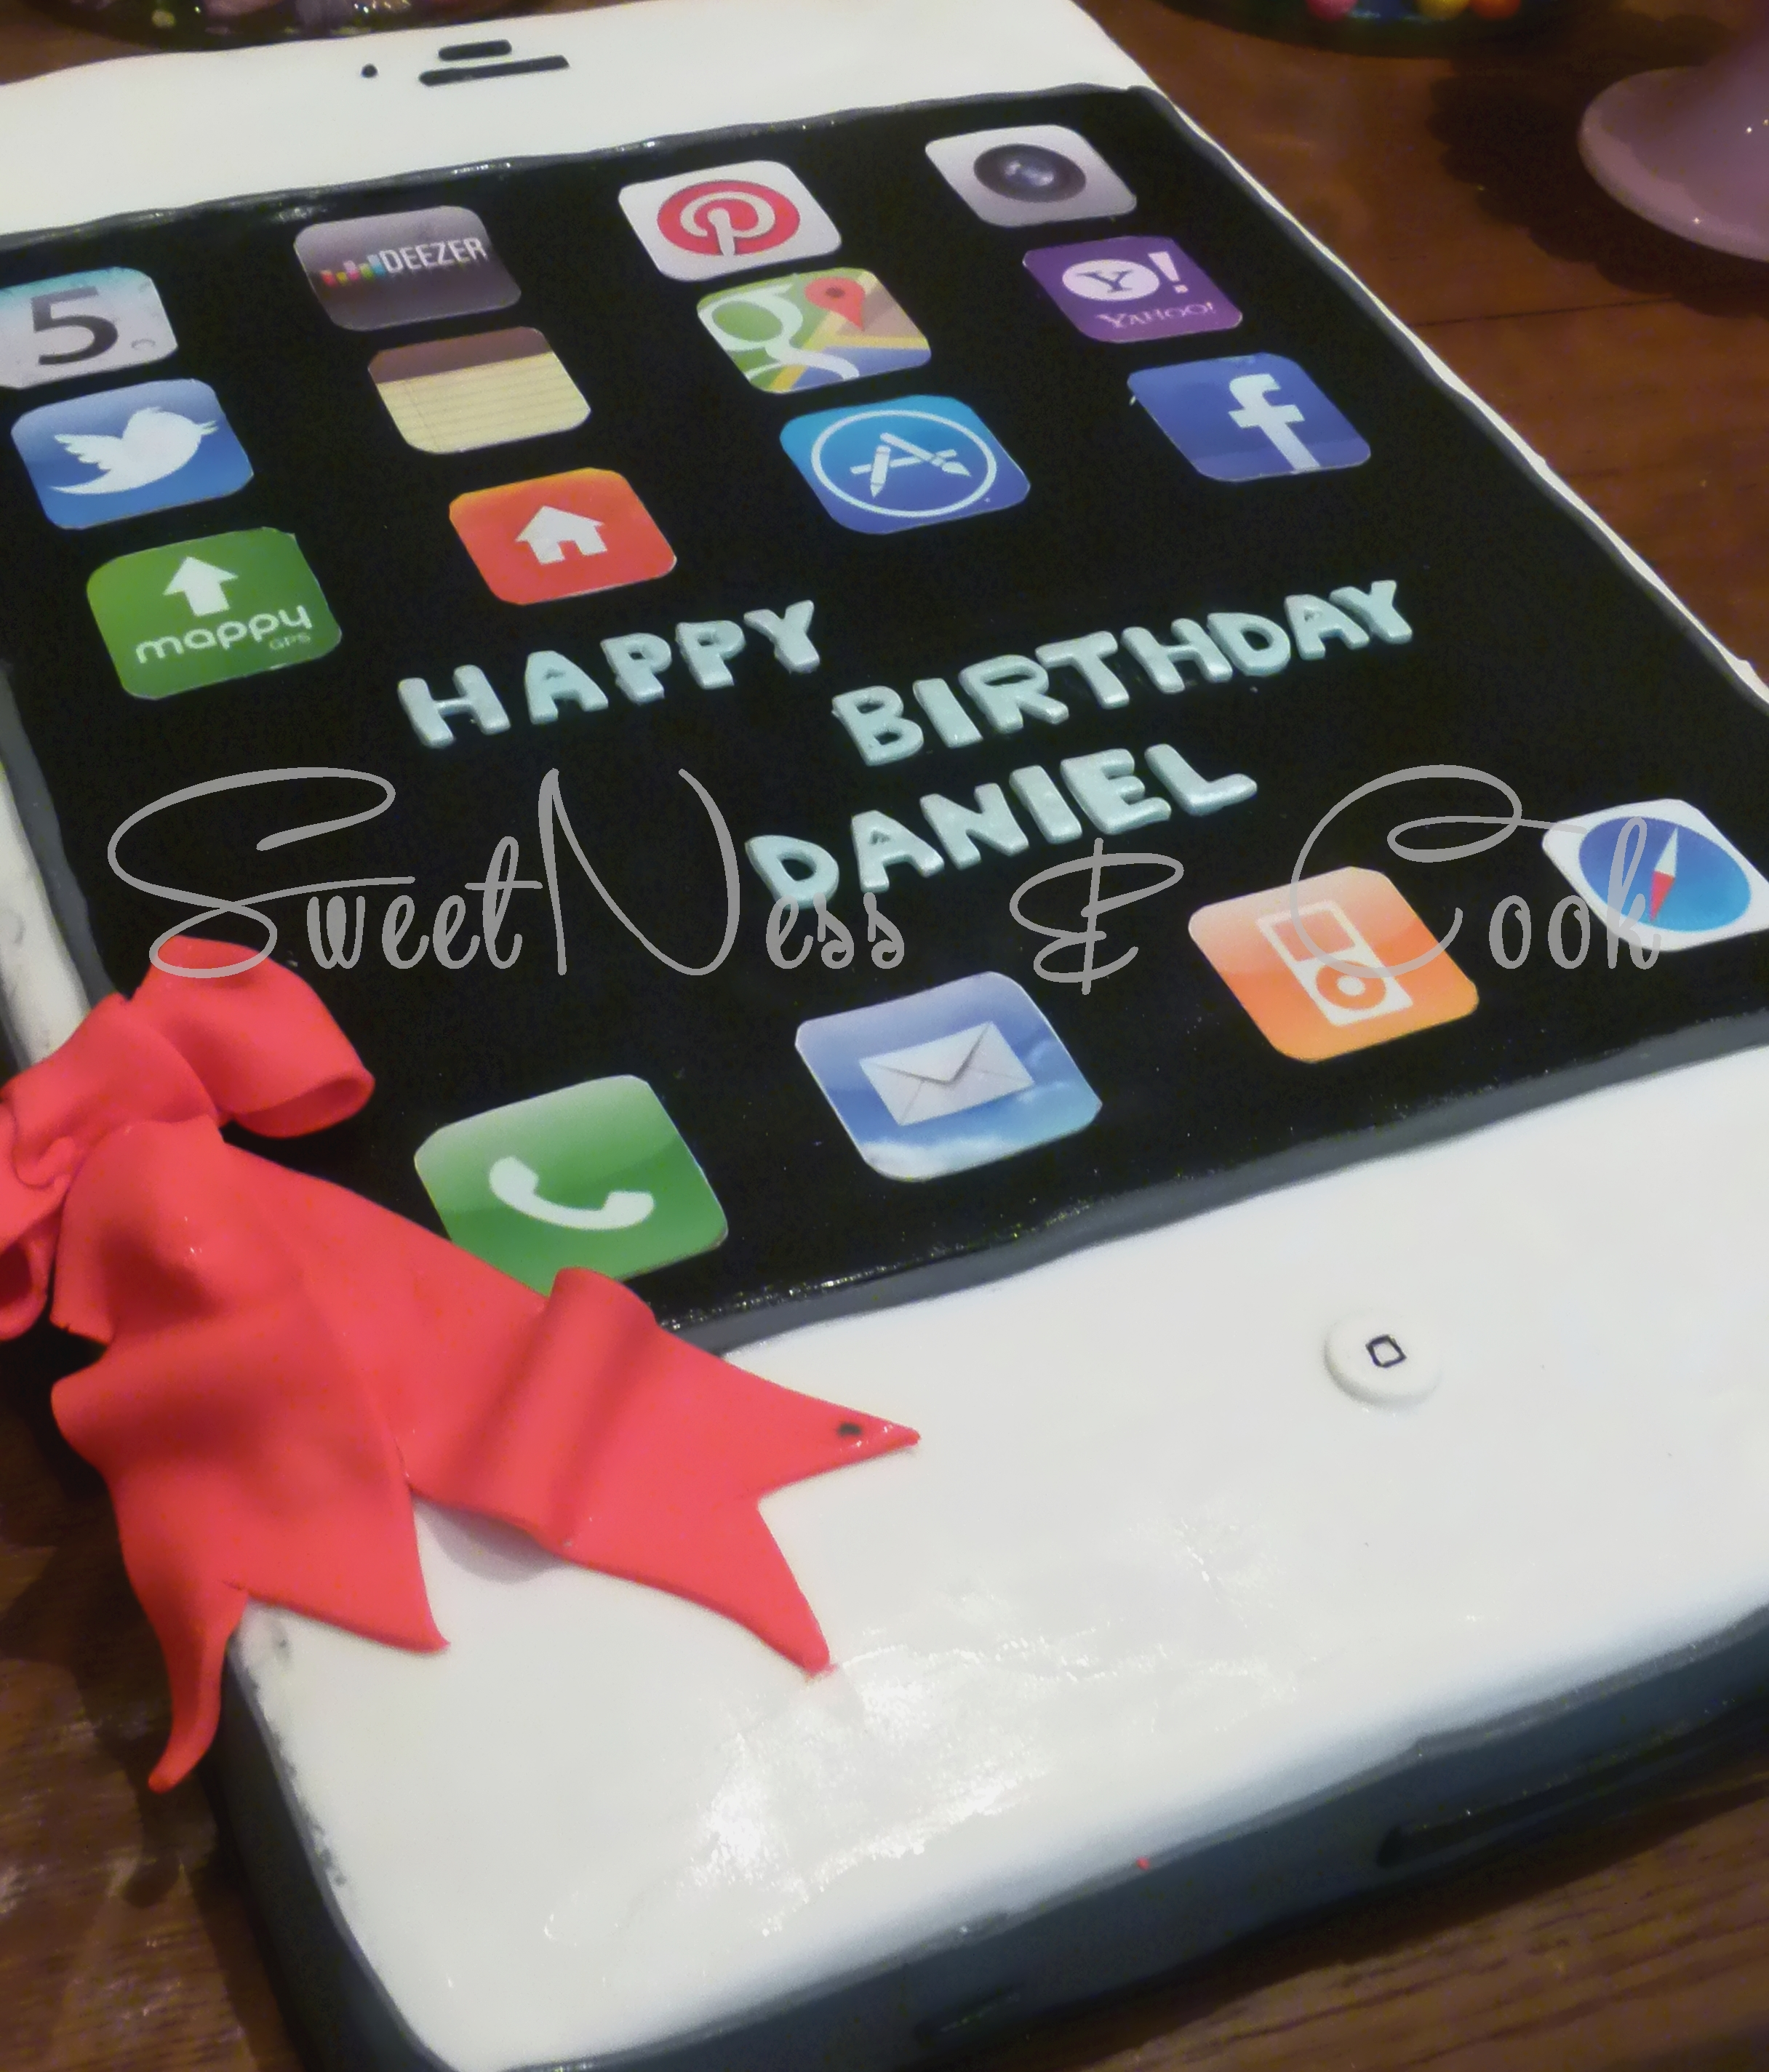 Cake Design Iphone